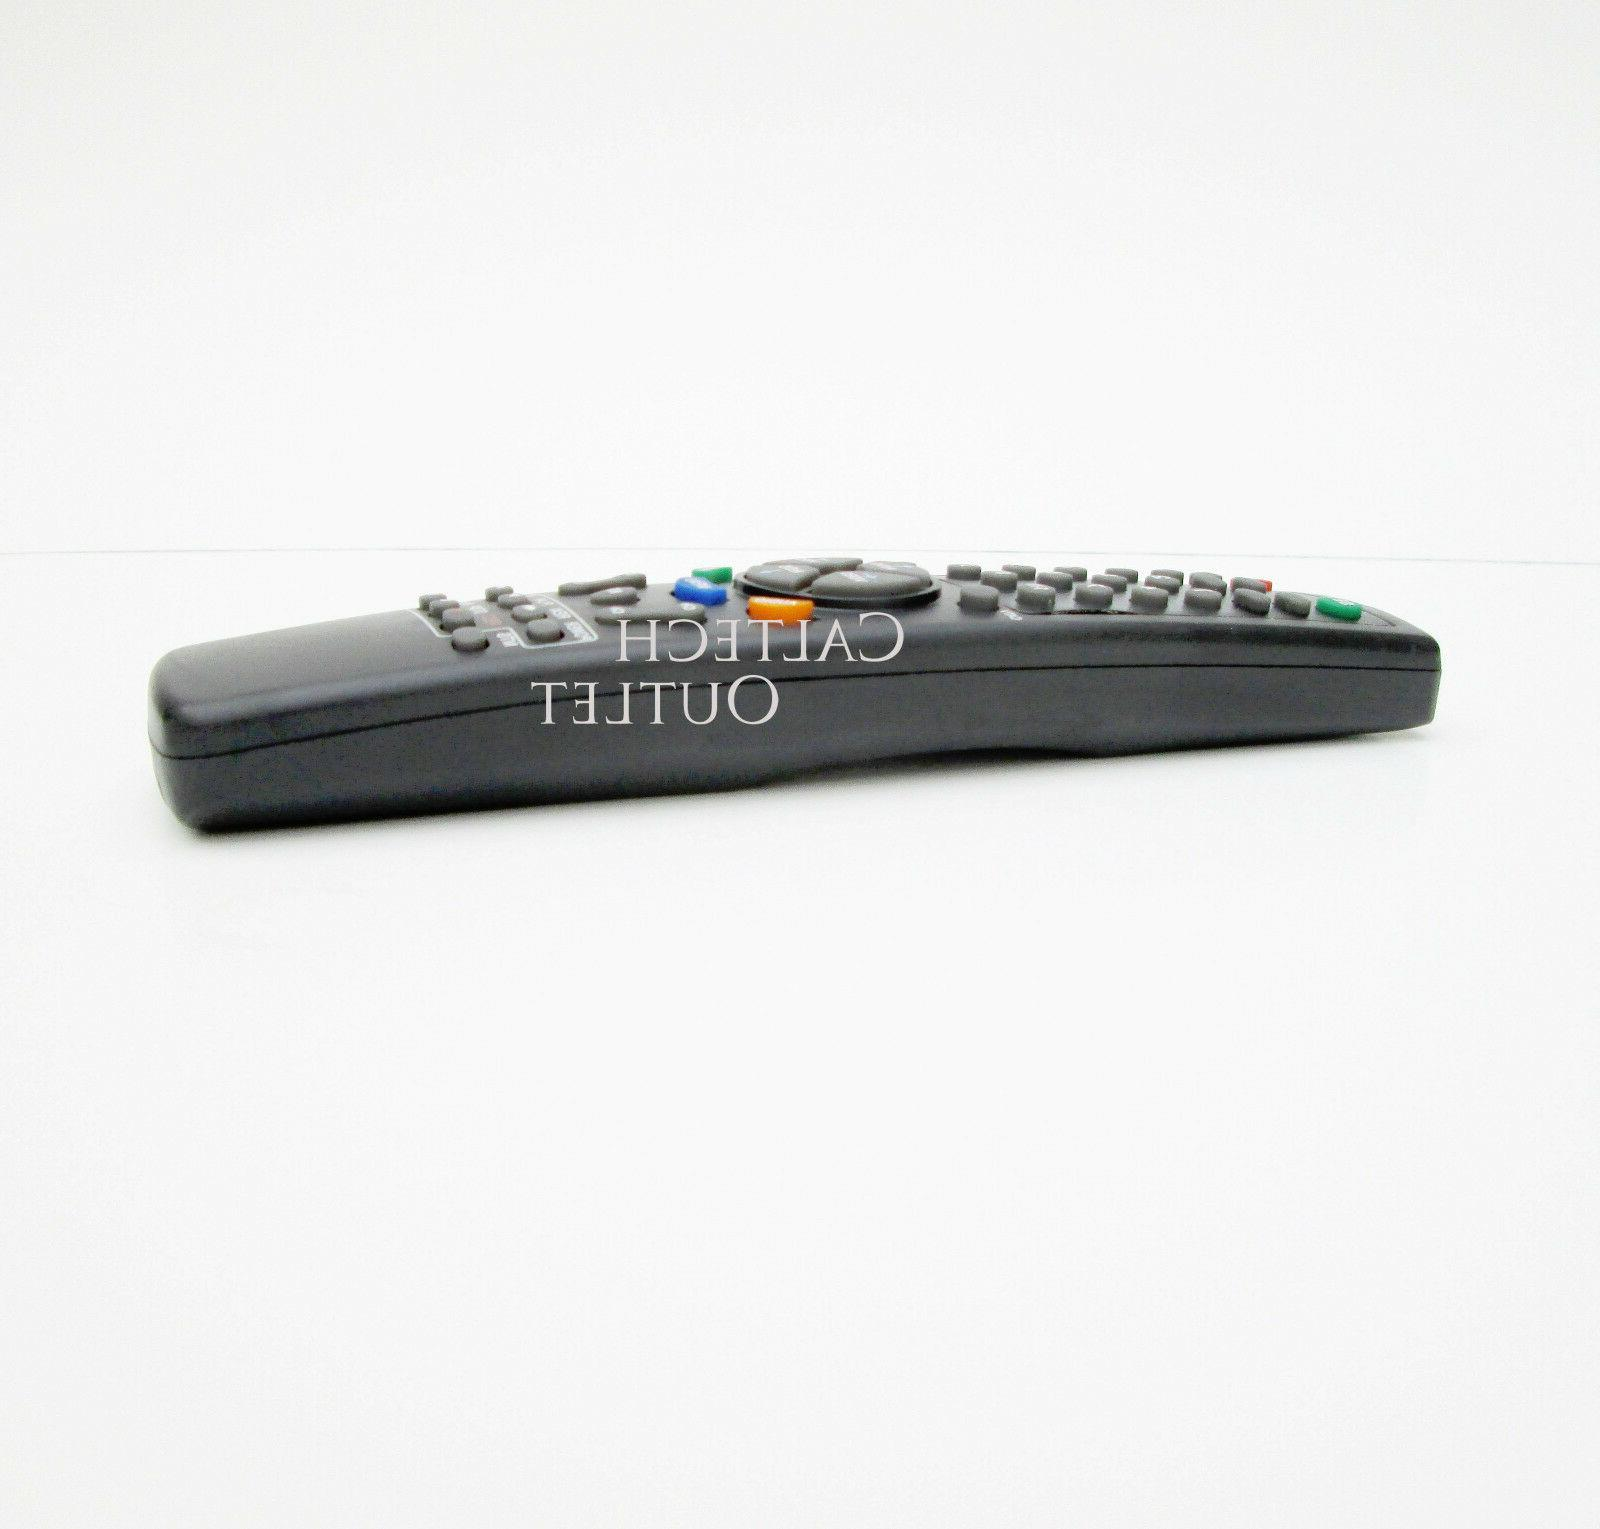 Philips SRP1103 Universal Remote Control For TV SAT CABL DTV